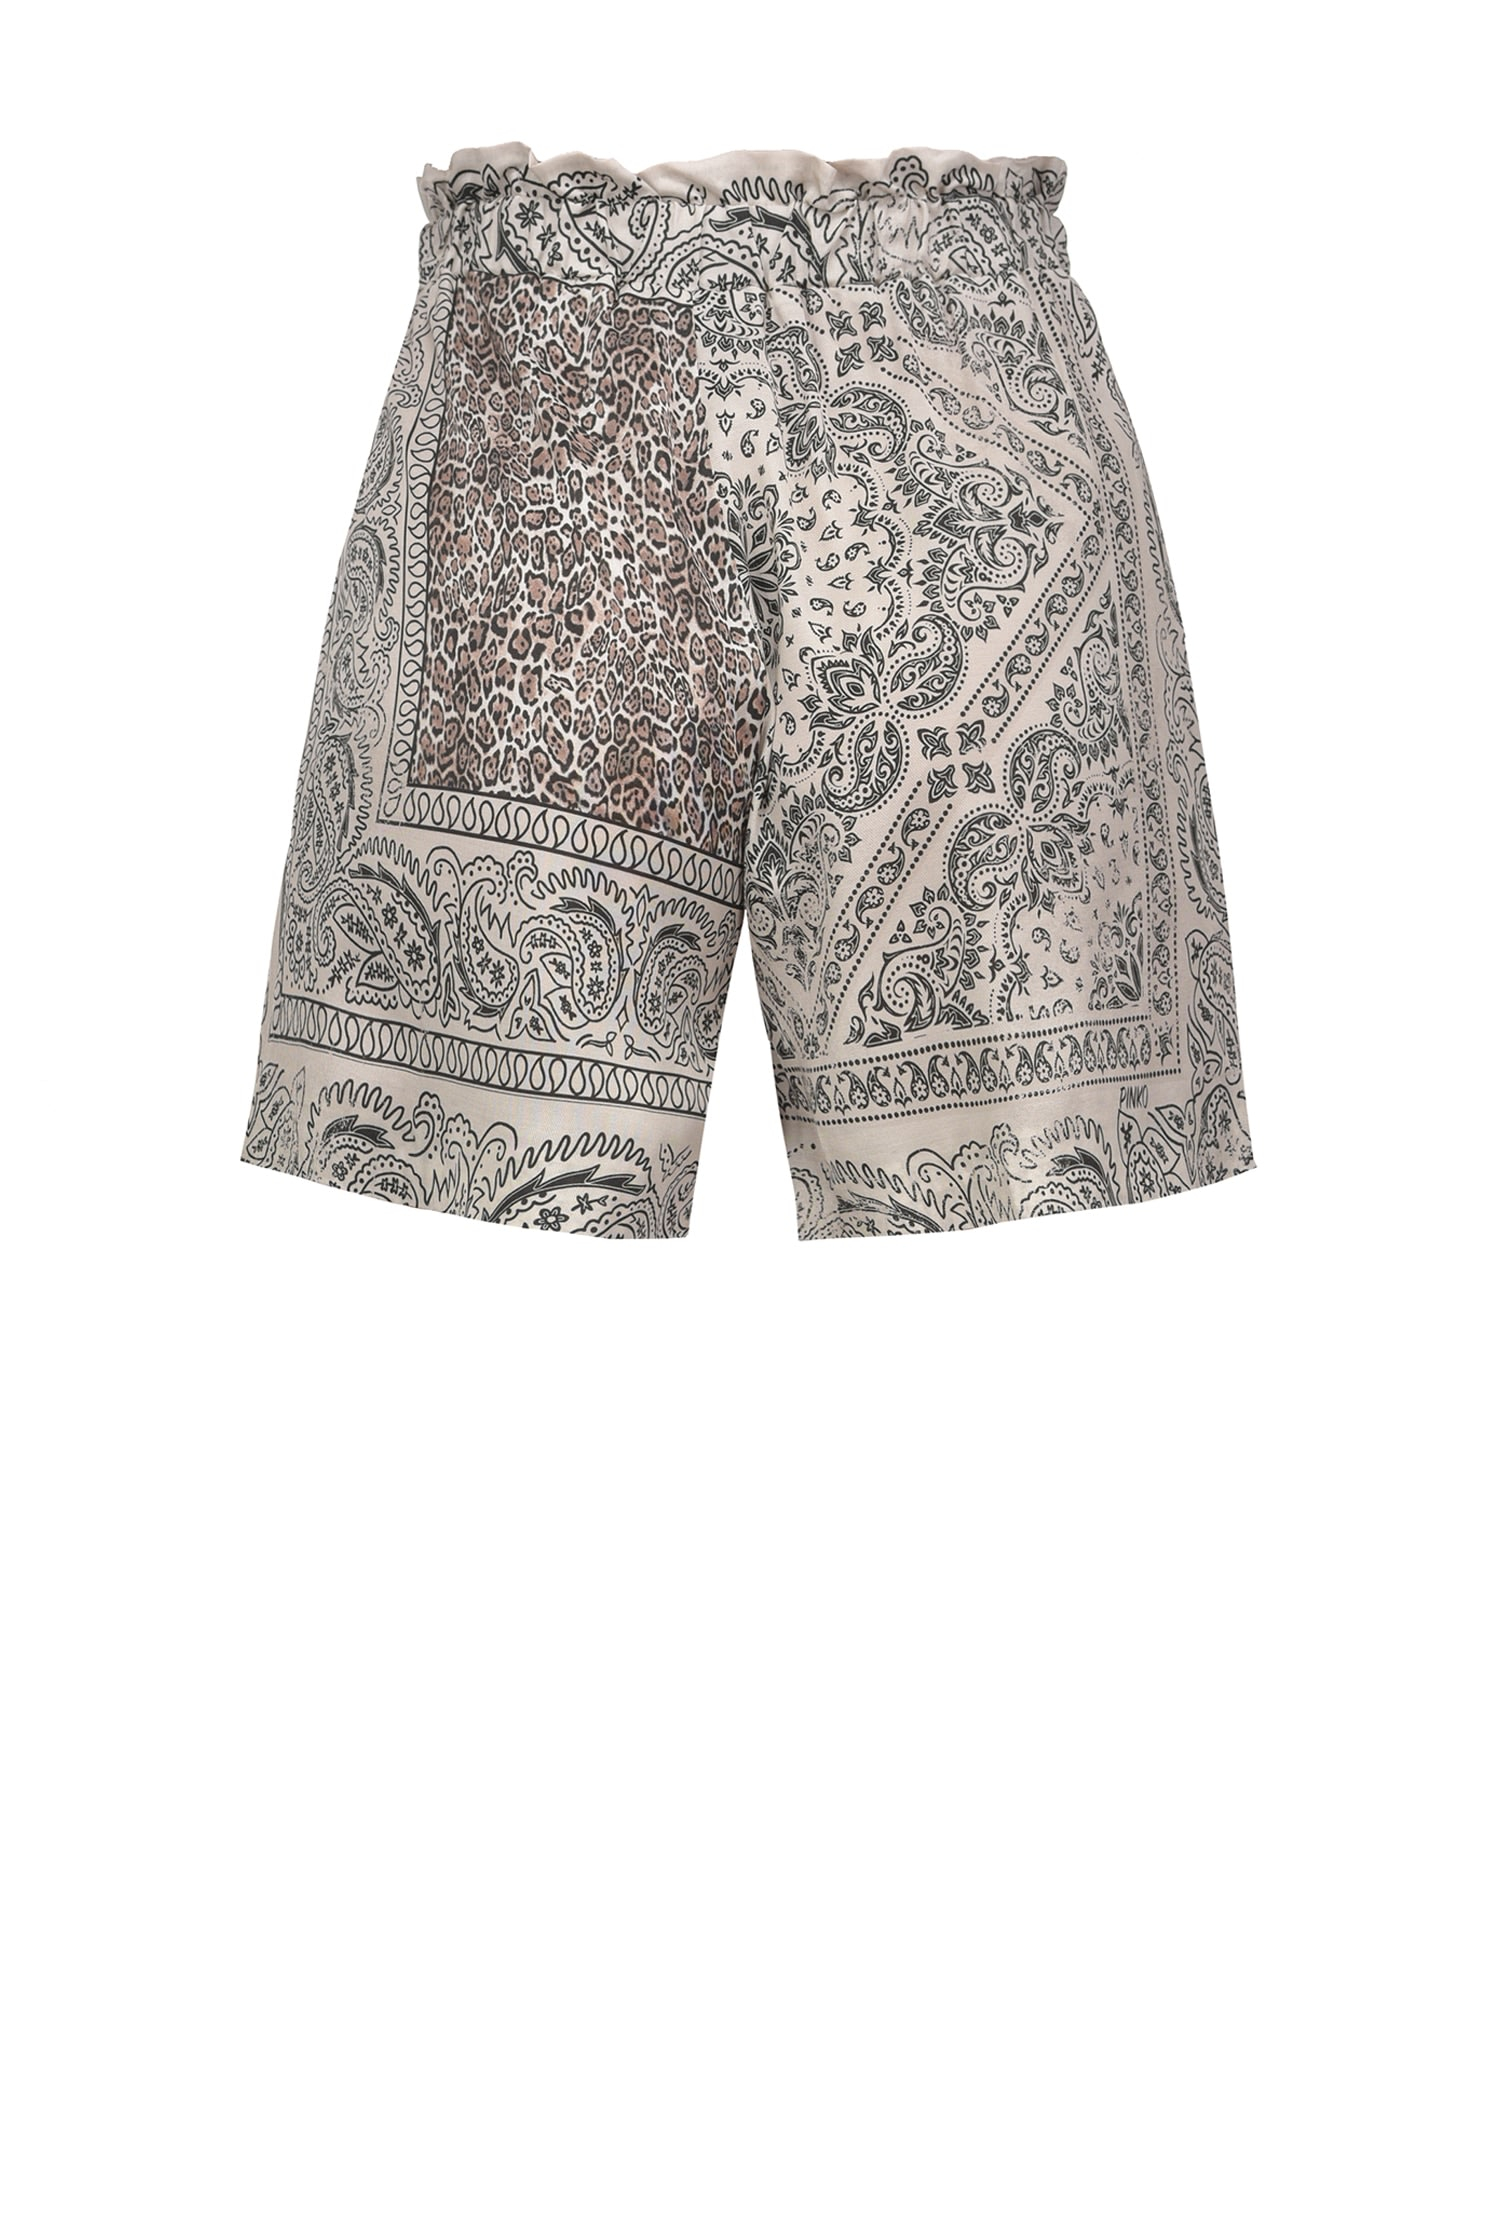 SHOPPING ON LINE PINKO SHORTS A STAMPA FANTASIA BANDANA CONTROMANO NEW COLLECTION WOMEN'S SPRING SUMMER 2021